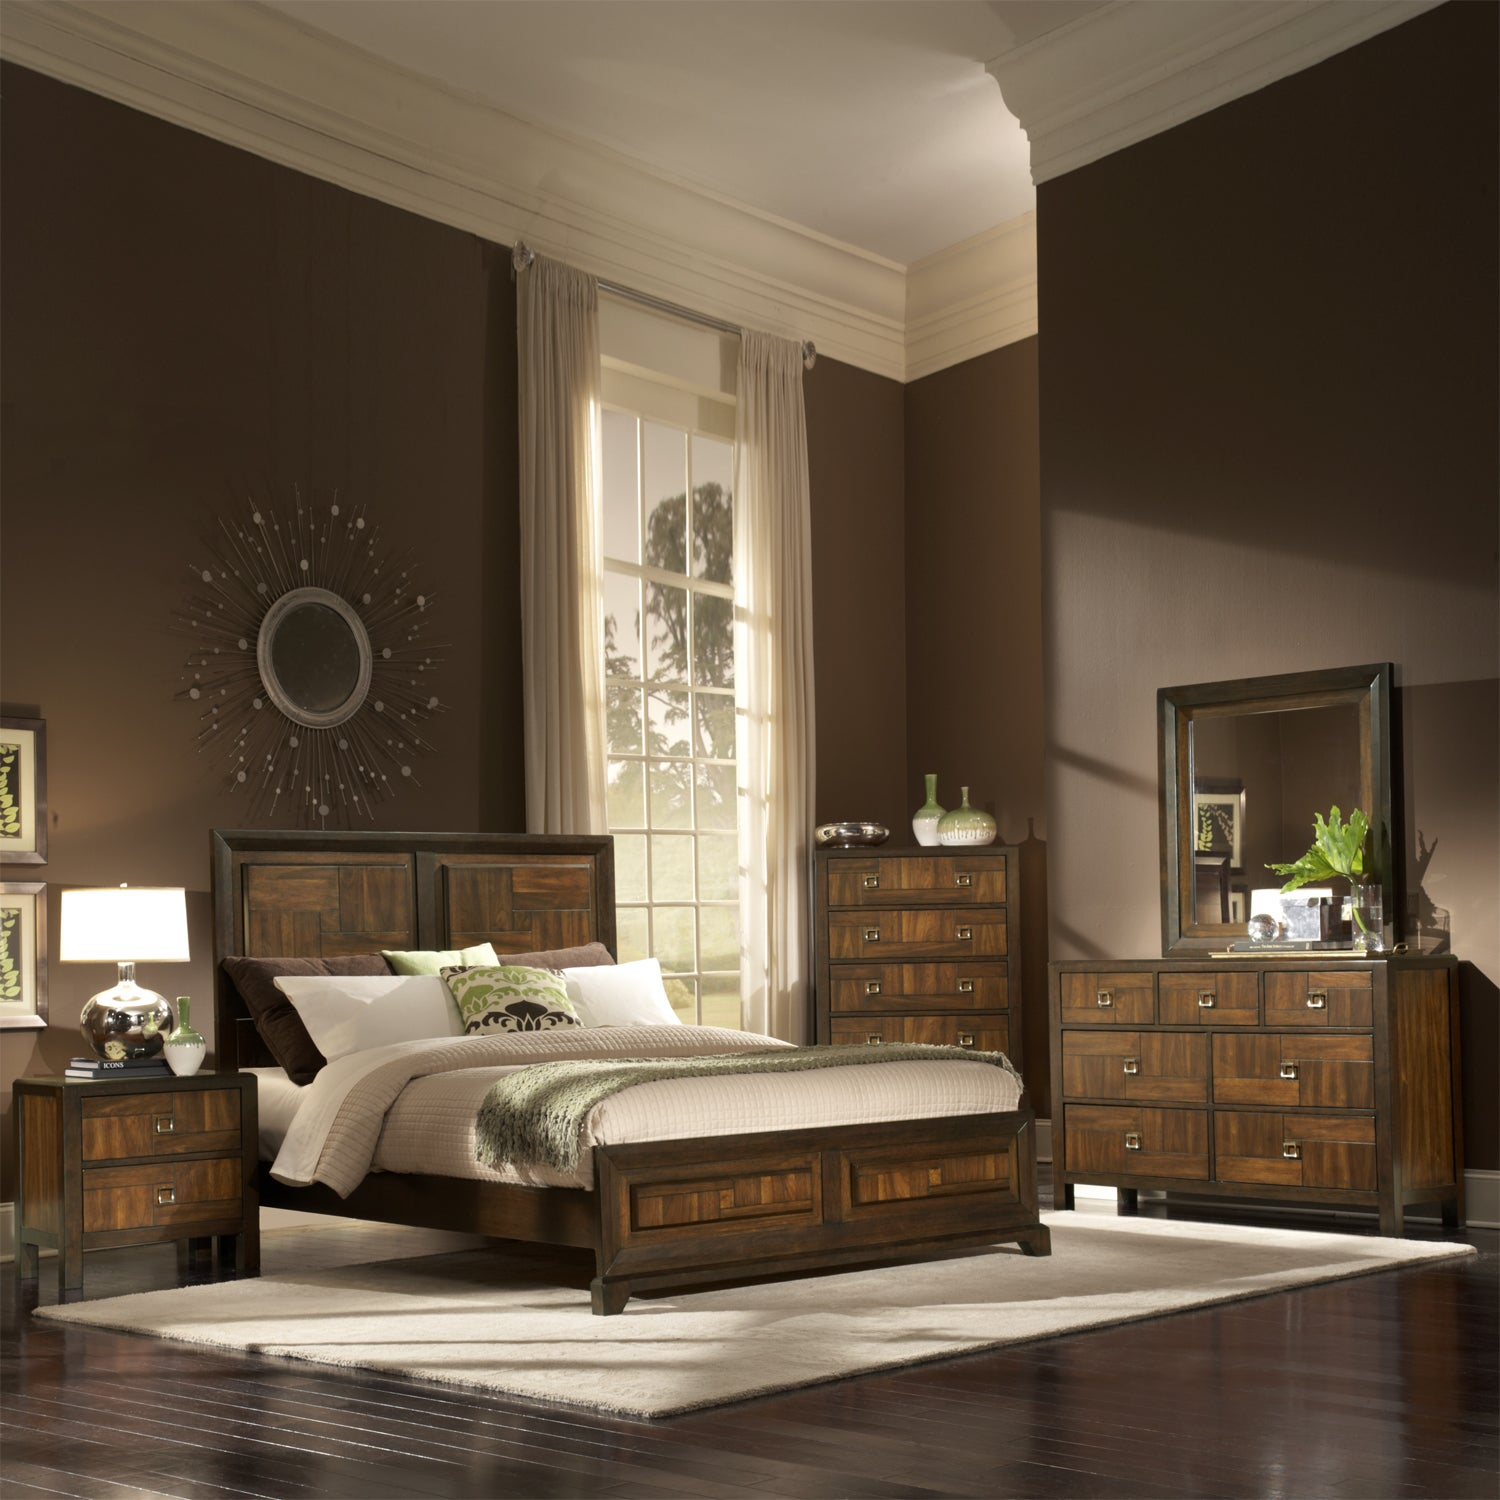 birken asymmetric walnut retro 5 piece queen size bedroom